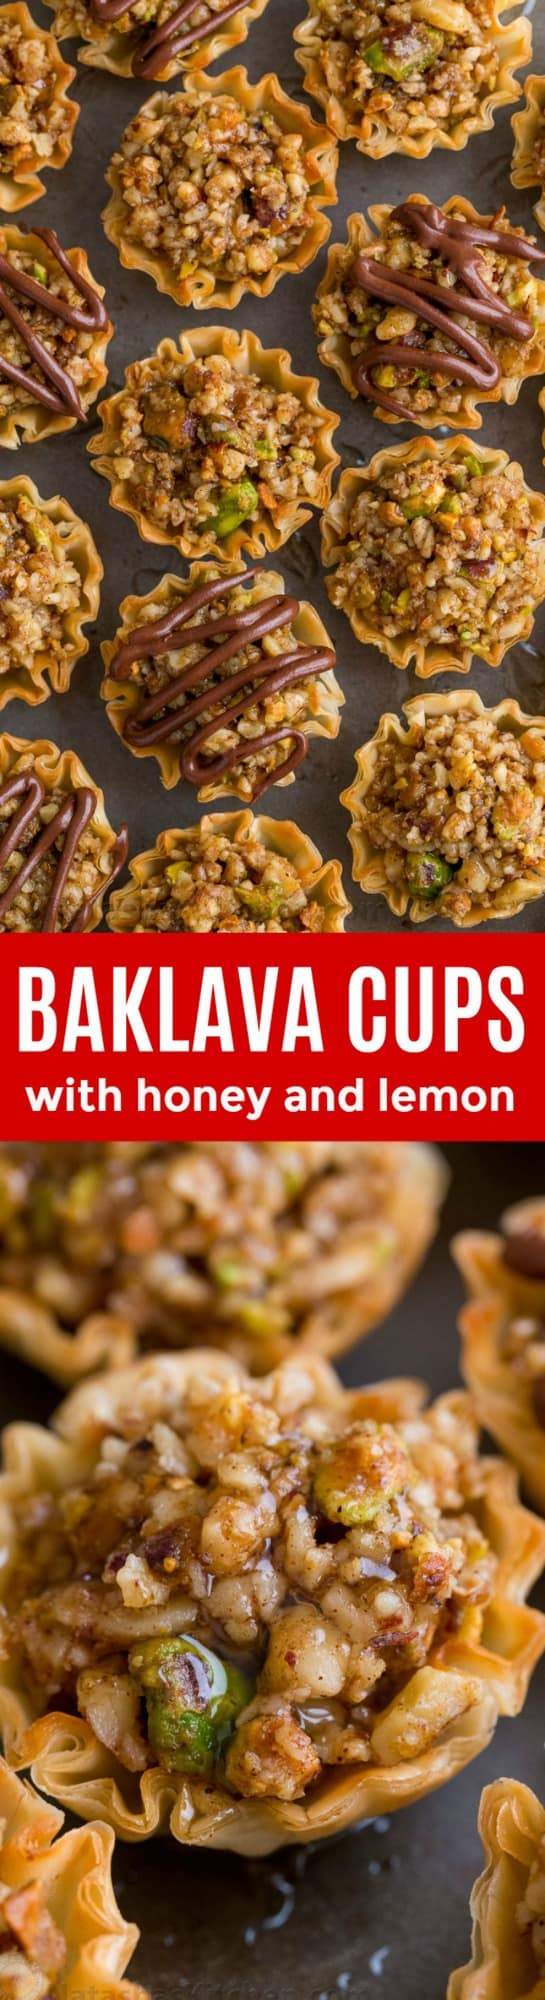 Mini Baklava Cups taste like authentic baklava but easier! The honey and lemon syrup make these baklava cups completely irresistible. A make-ahead recipe! | natashaskitchen.com